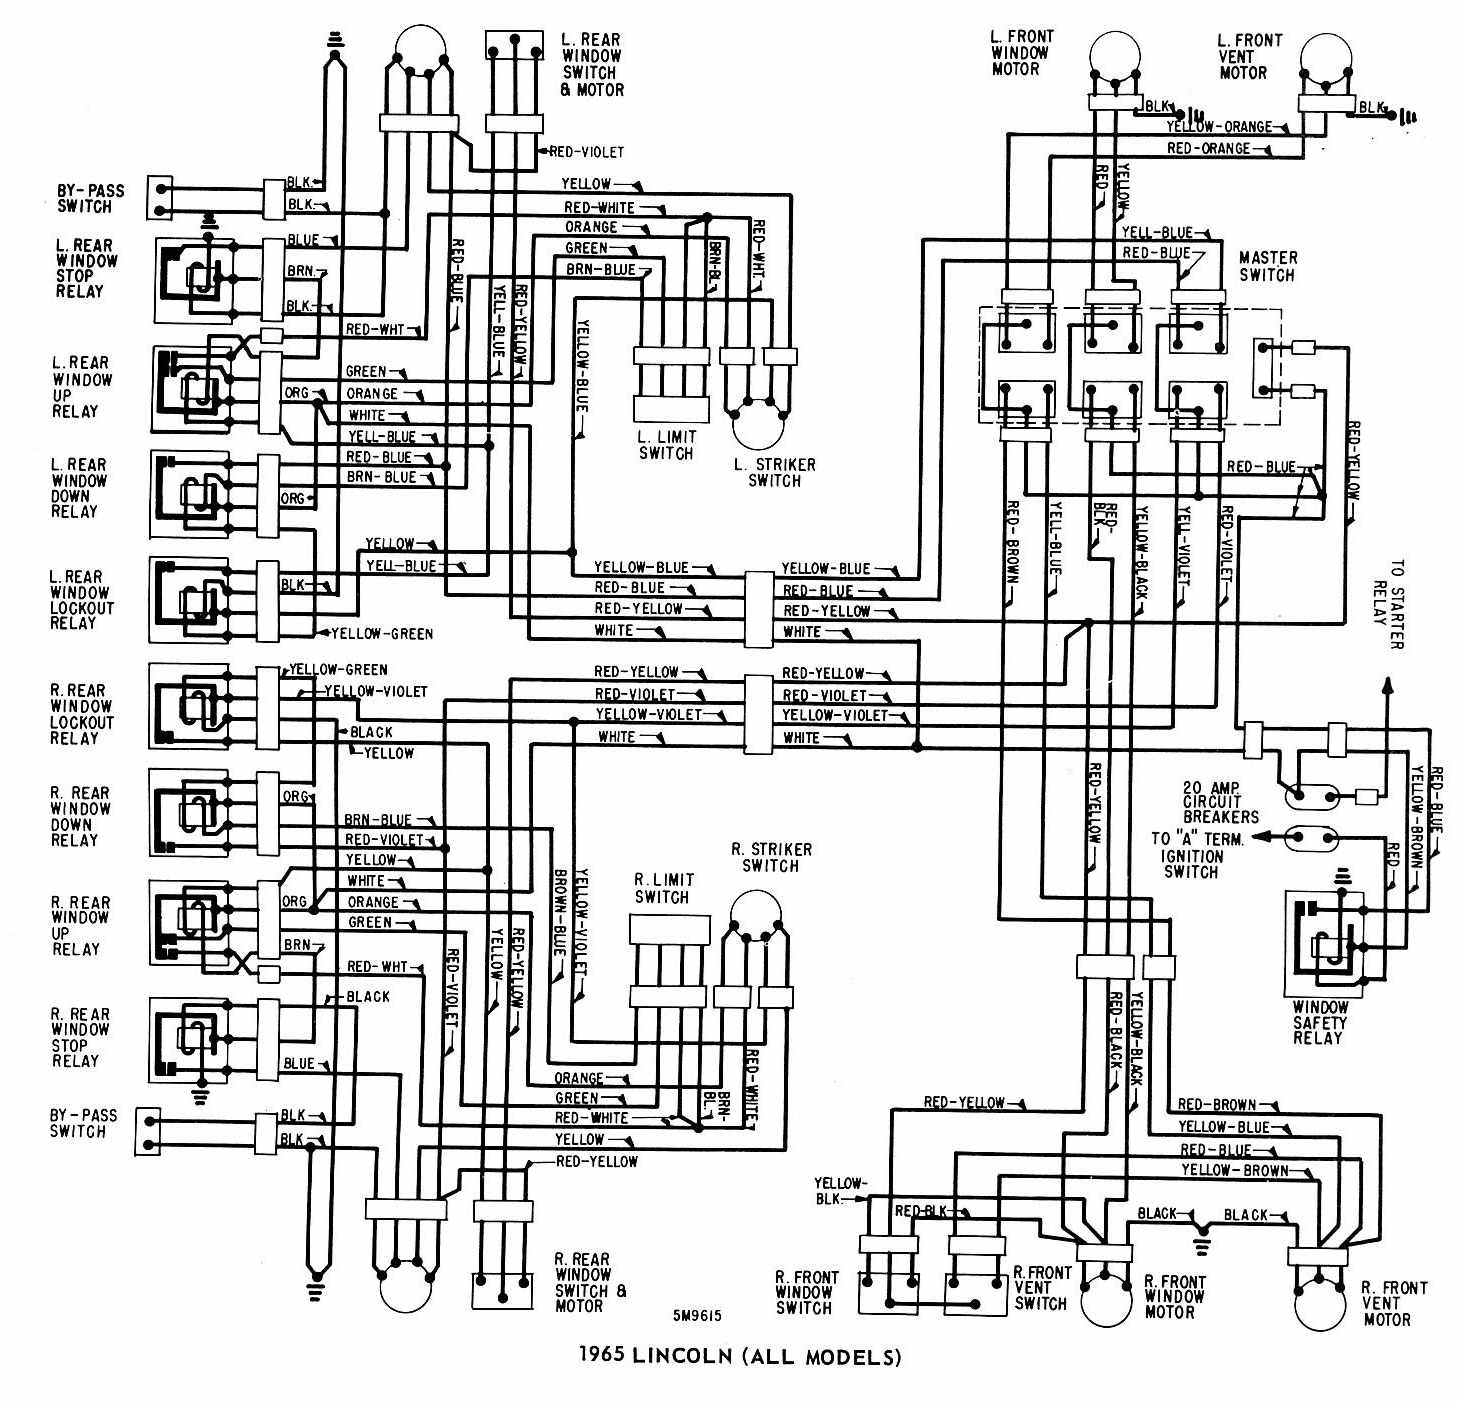 1931 Ford Model A Wiring Diagram Light as well 1995 Ford F150 Starter Wiring Diagram also ment 15266 likewise 1964 Mustang Wiring Diagrams likewise Chevy V8 350 5 7l Engine Diagram. on 1964 chevy starter wiring diagram